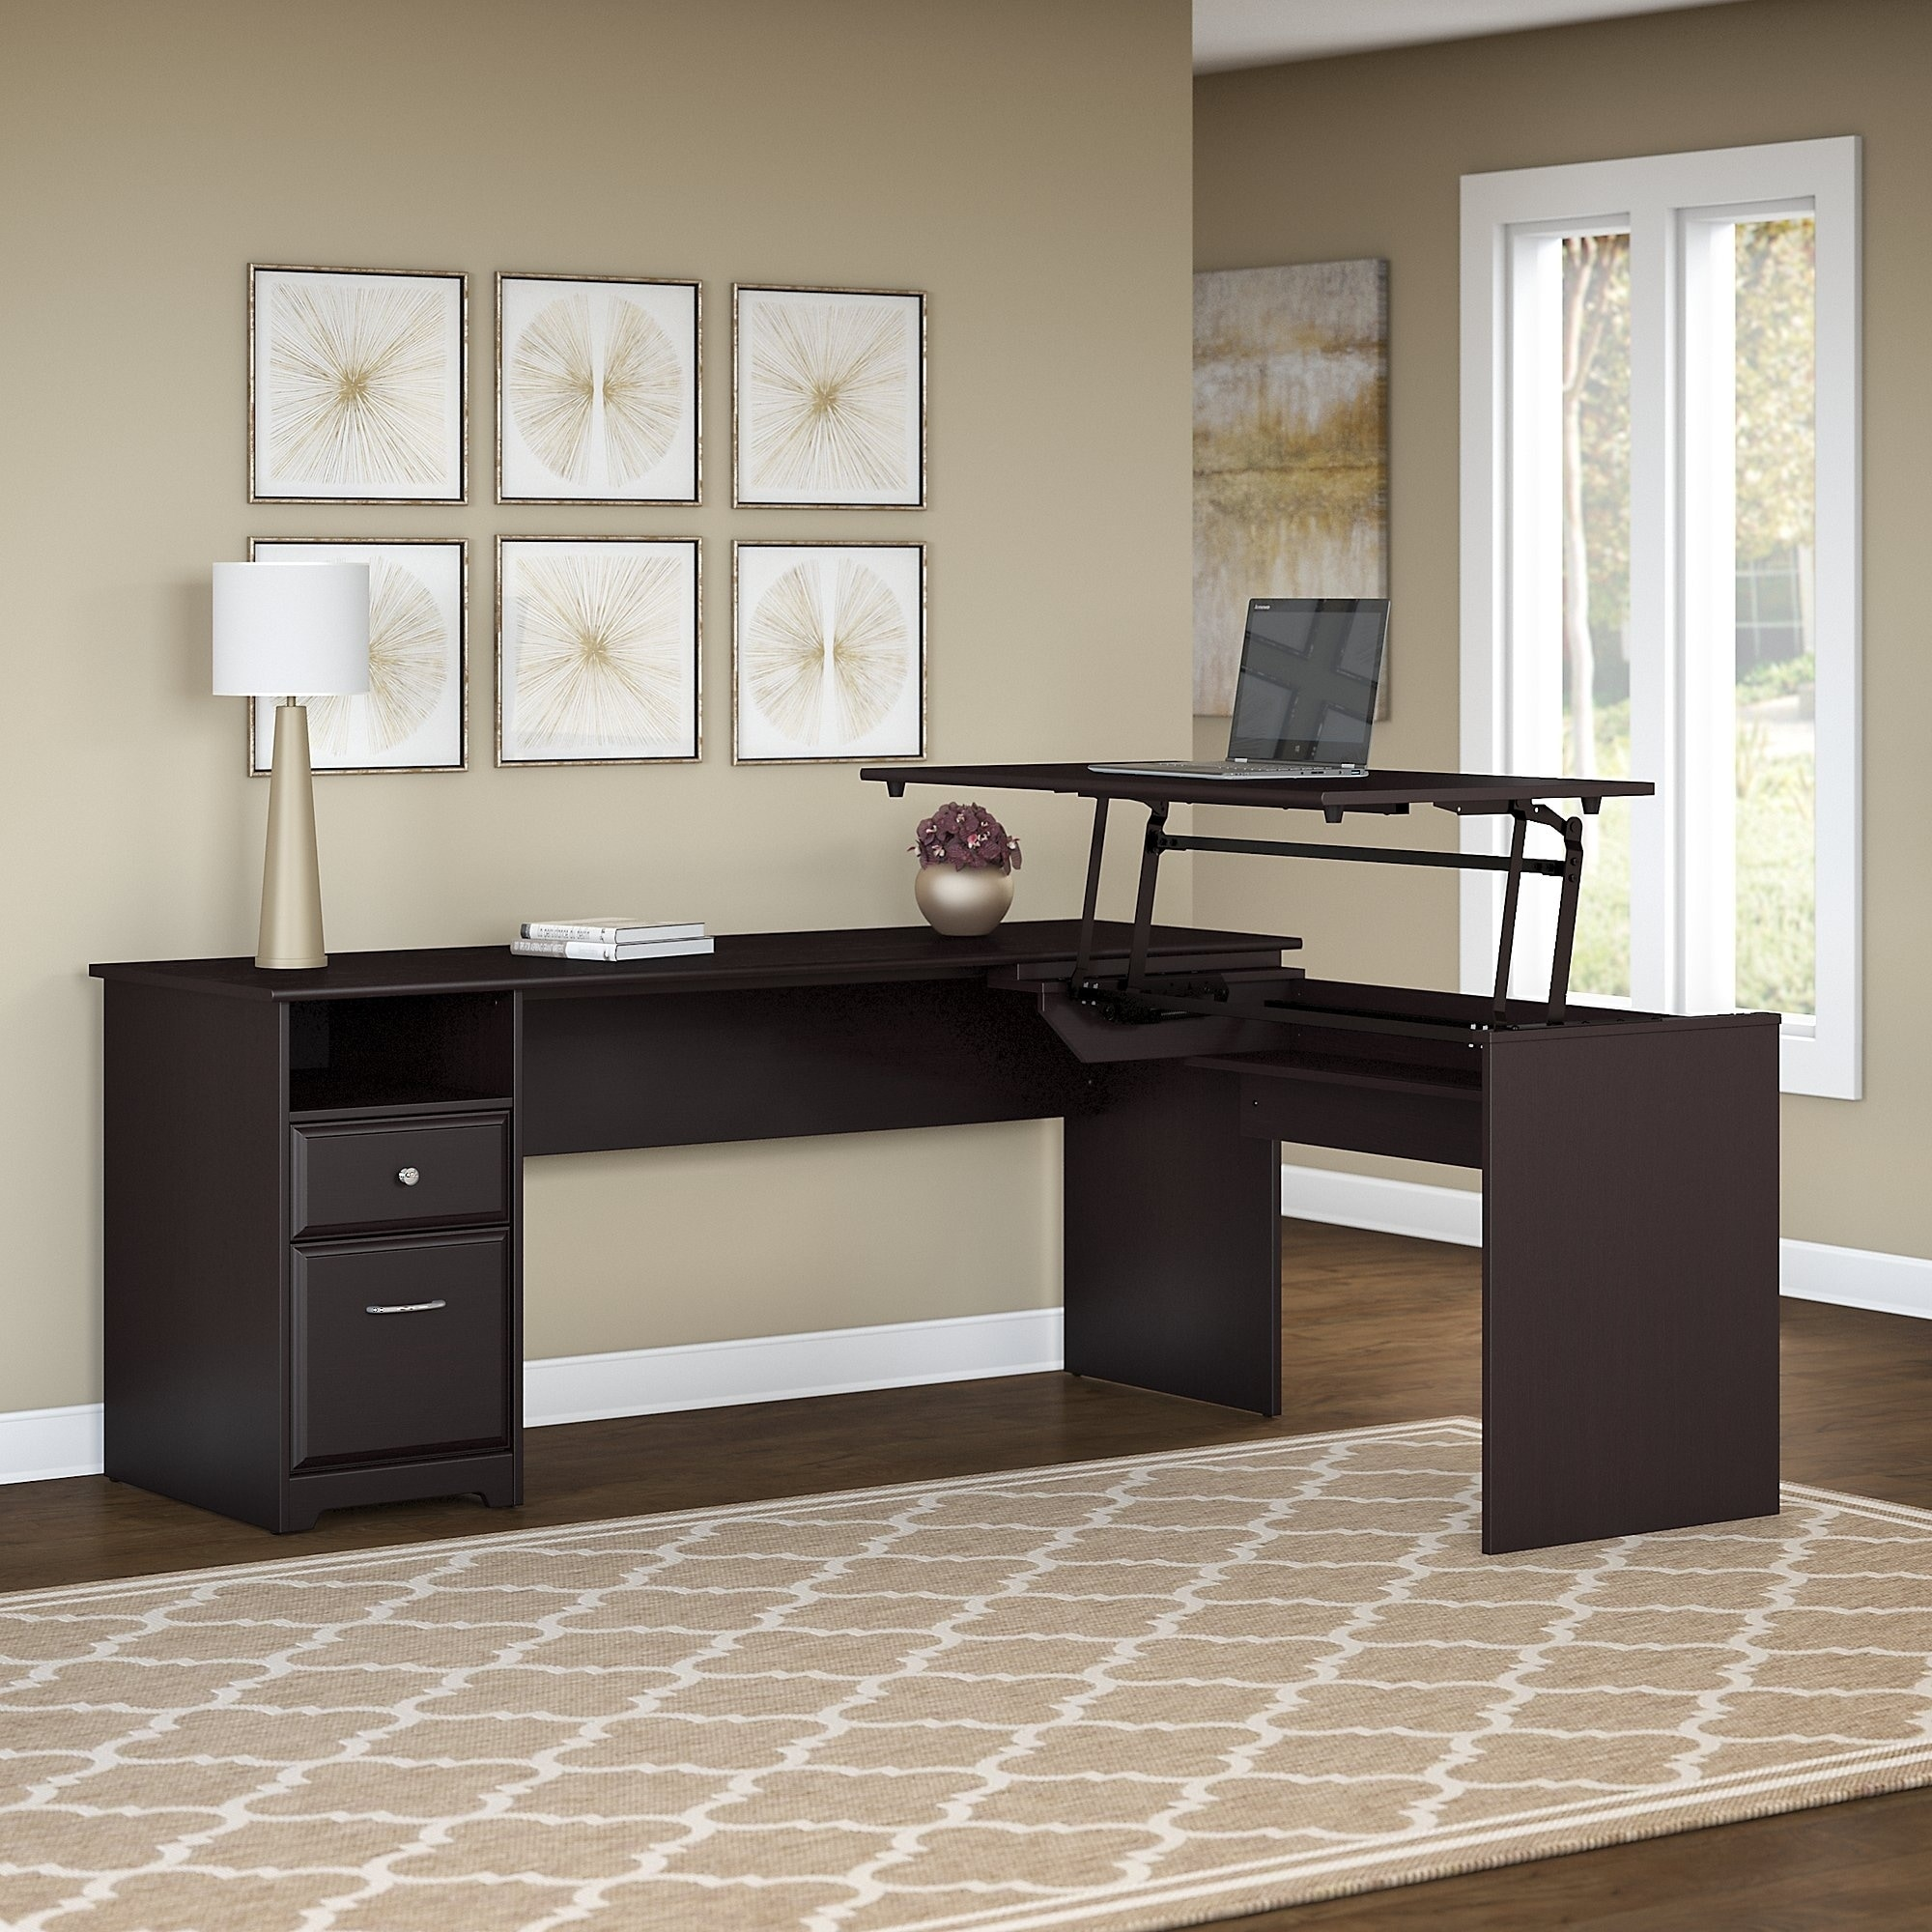 Ergo Floor Stand Artisan Designs : Buy ergonomic desks online at overstock our best home office